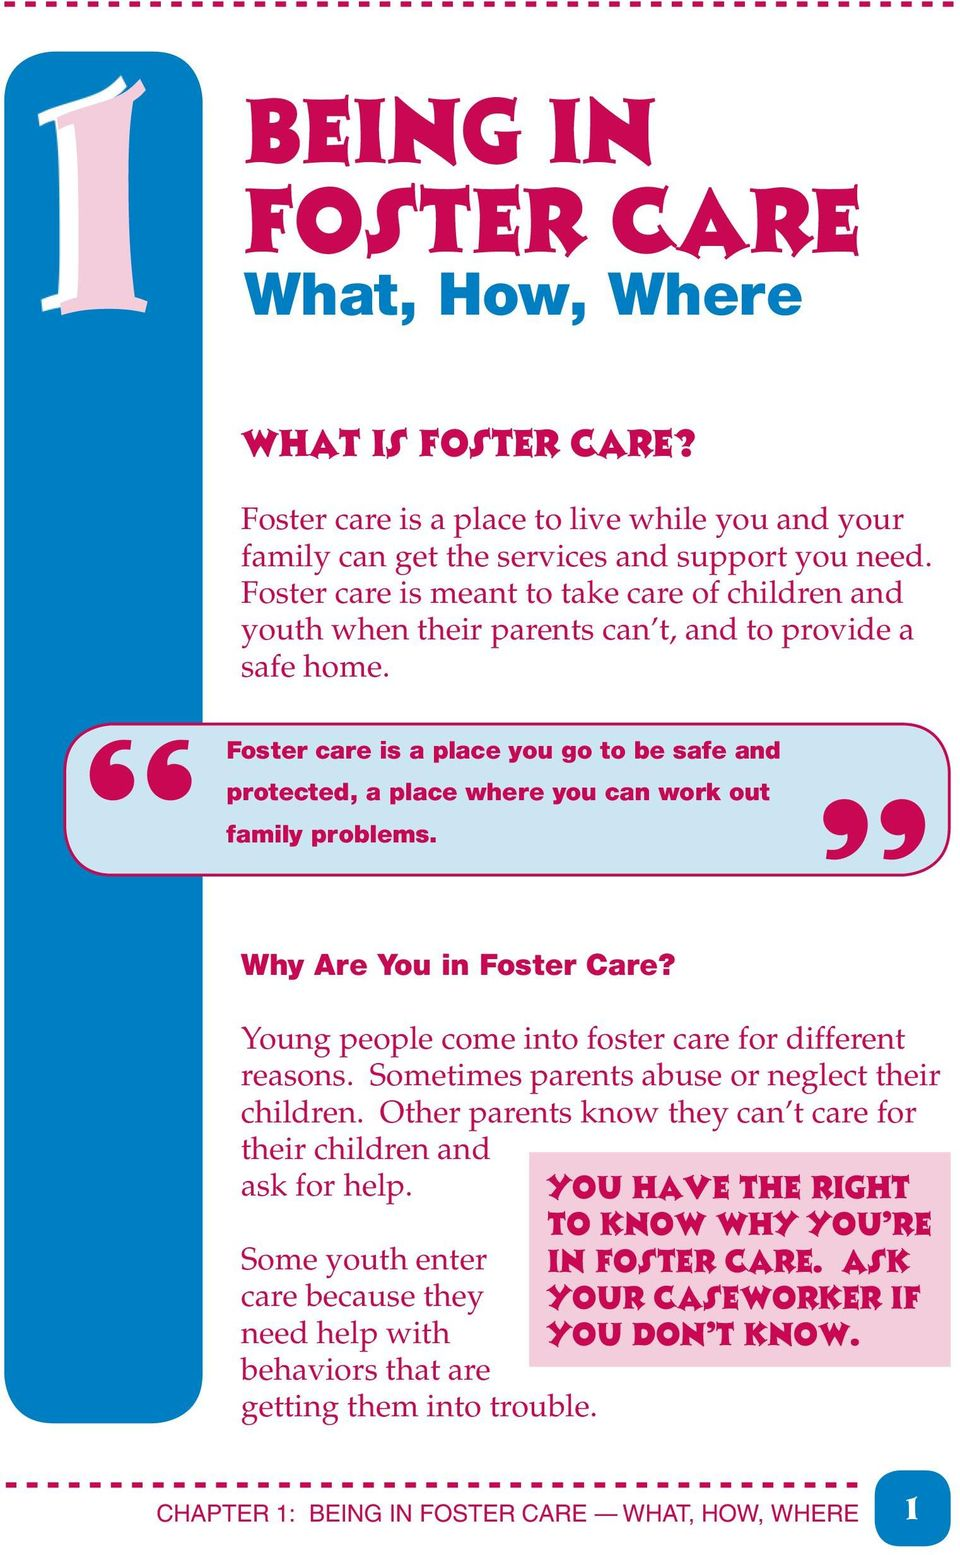 Foster care is a place you go to be safe and protected, a place where you can work out family problems. Why Are You in Foster Care? Young people come into foster care for different reasons.